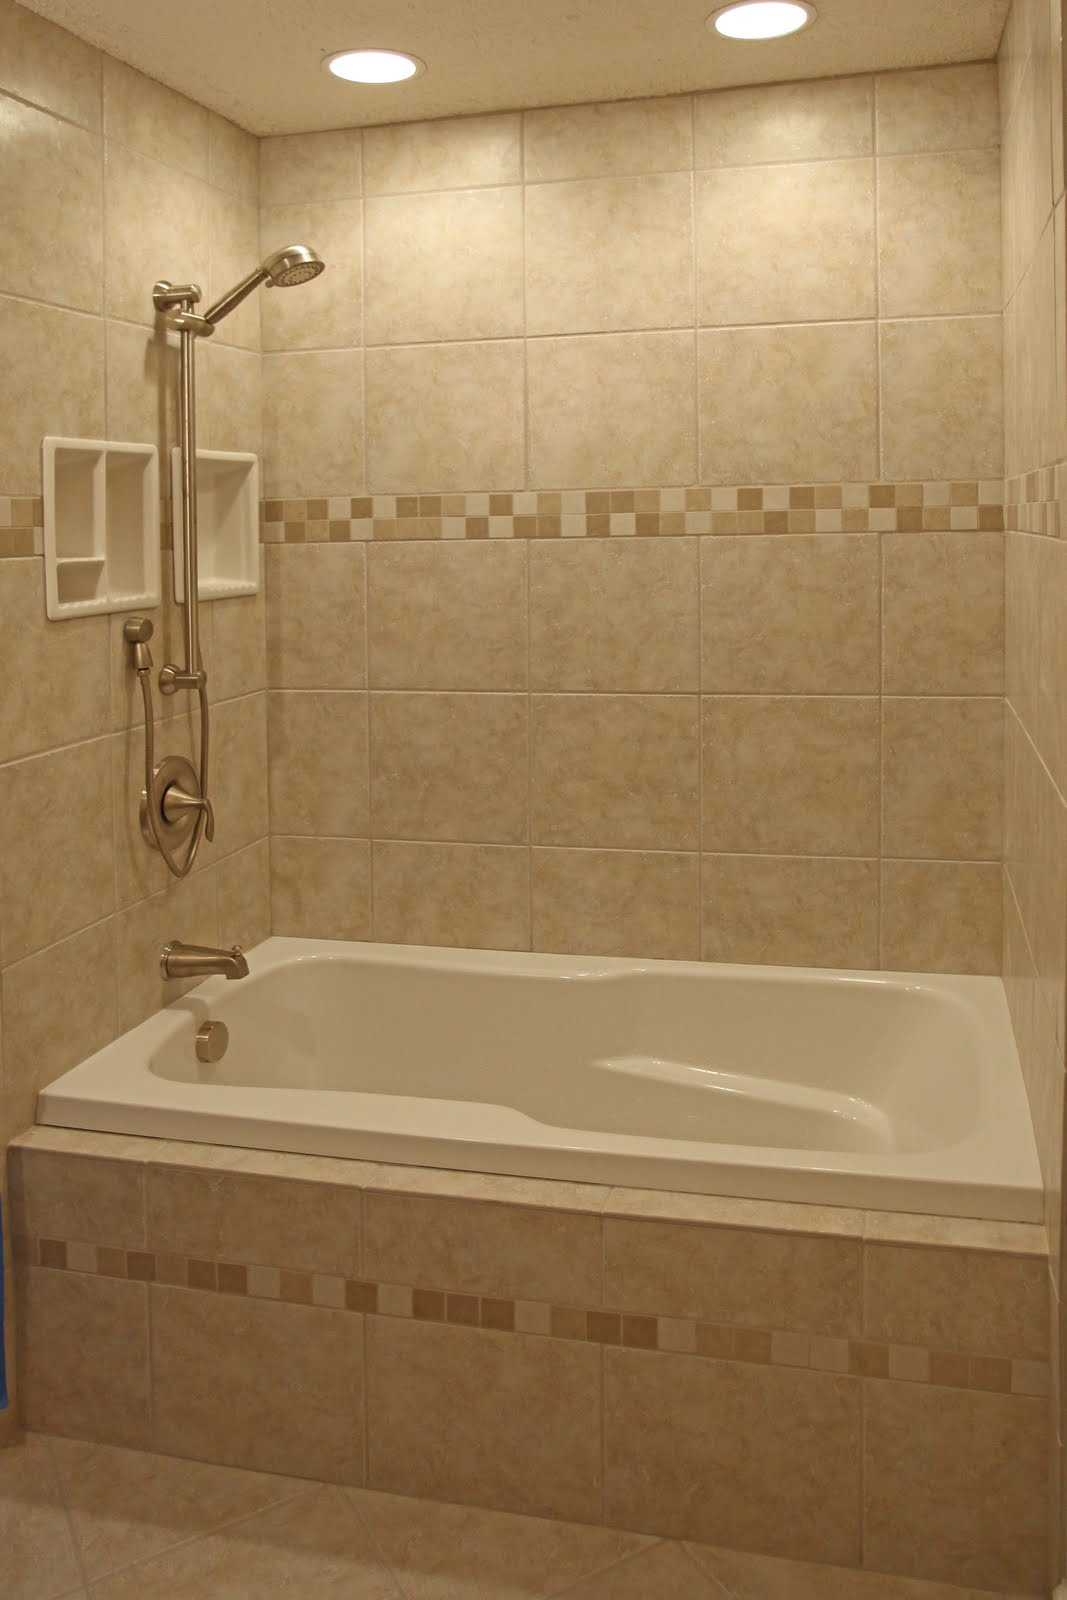 Bathroom remodeling design ideas tile shower niches for Bathroom ideas with tub and shower